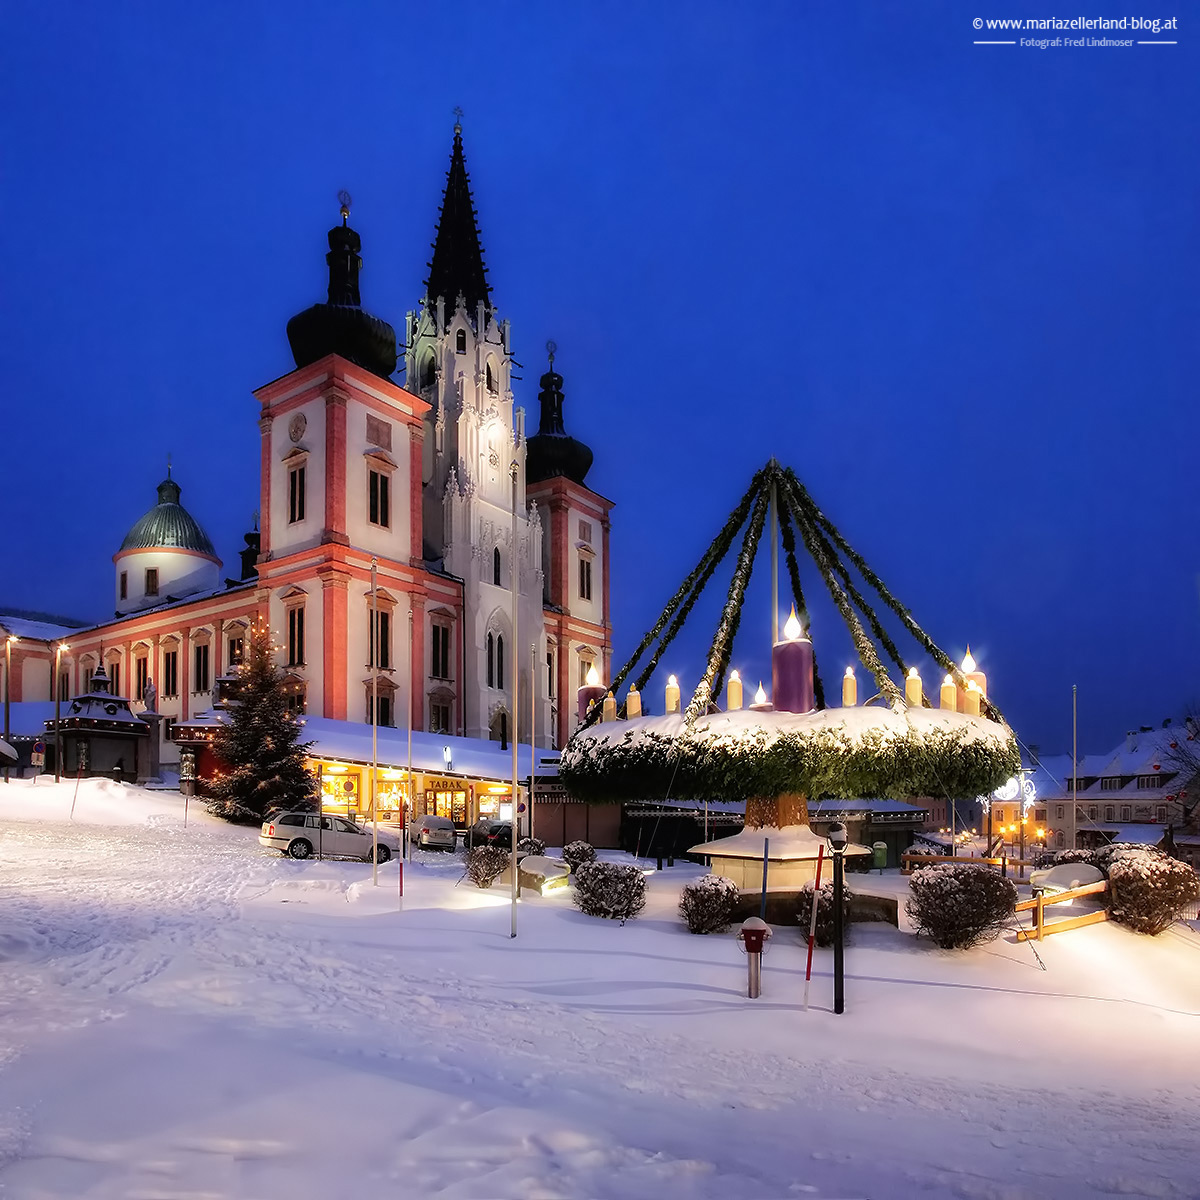 Stille_Basilika-Mariazell-Adventkranz-Winter